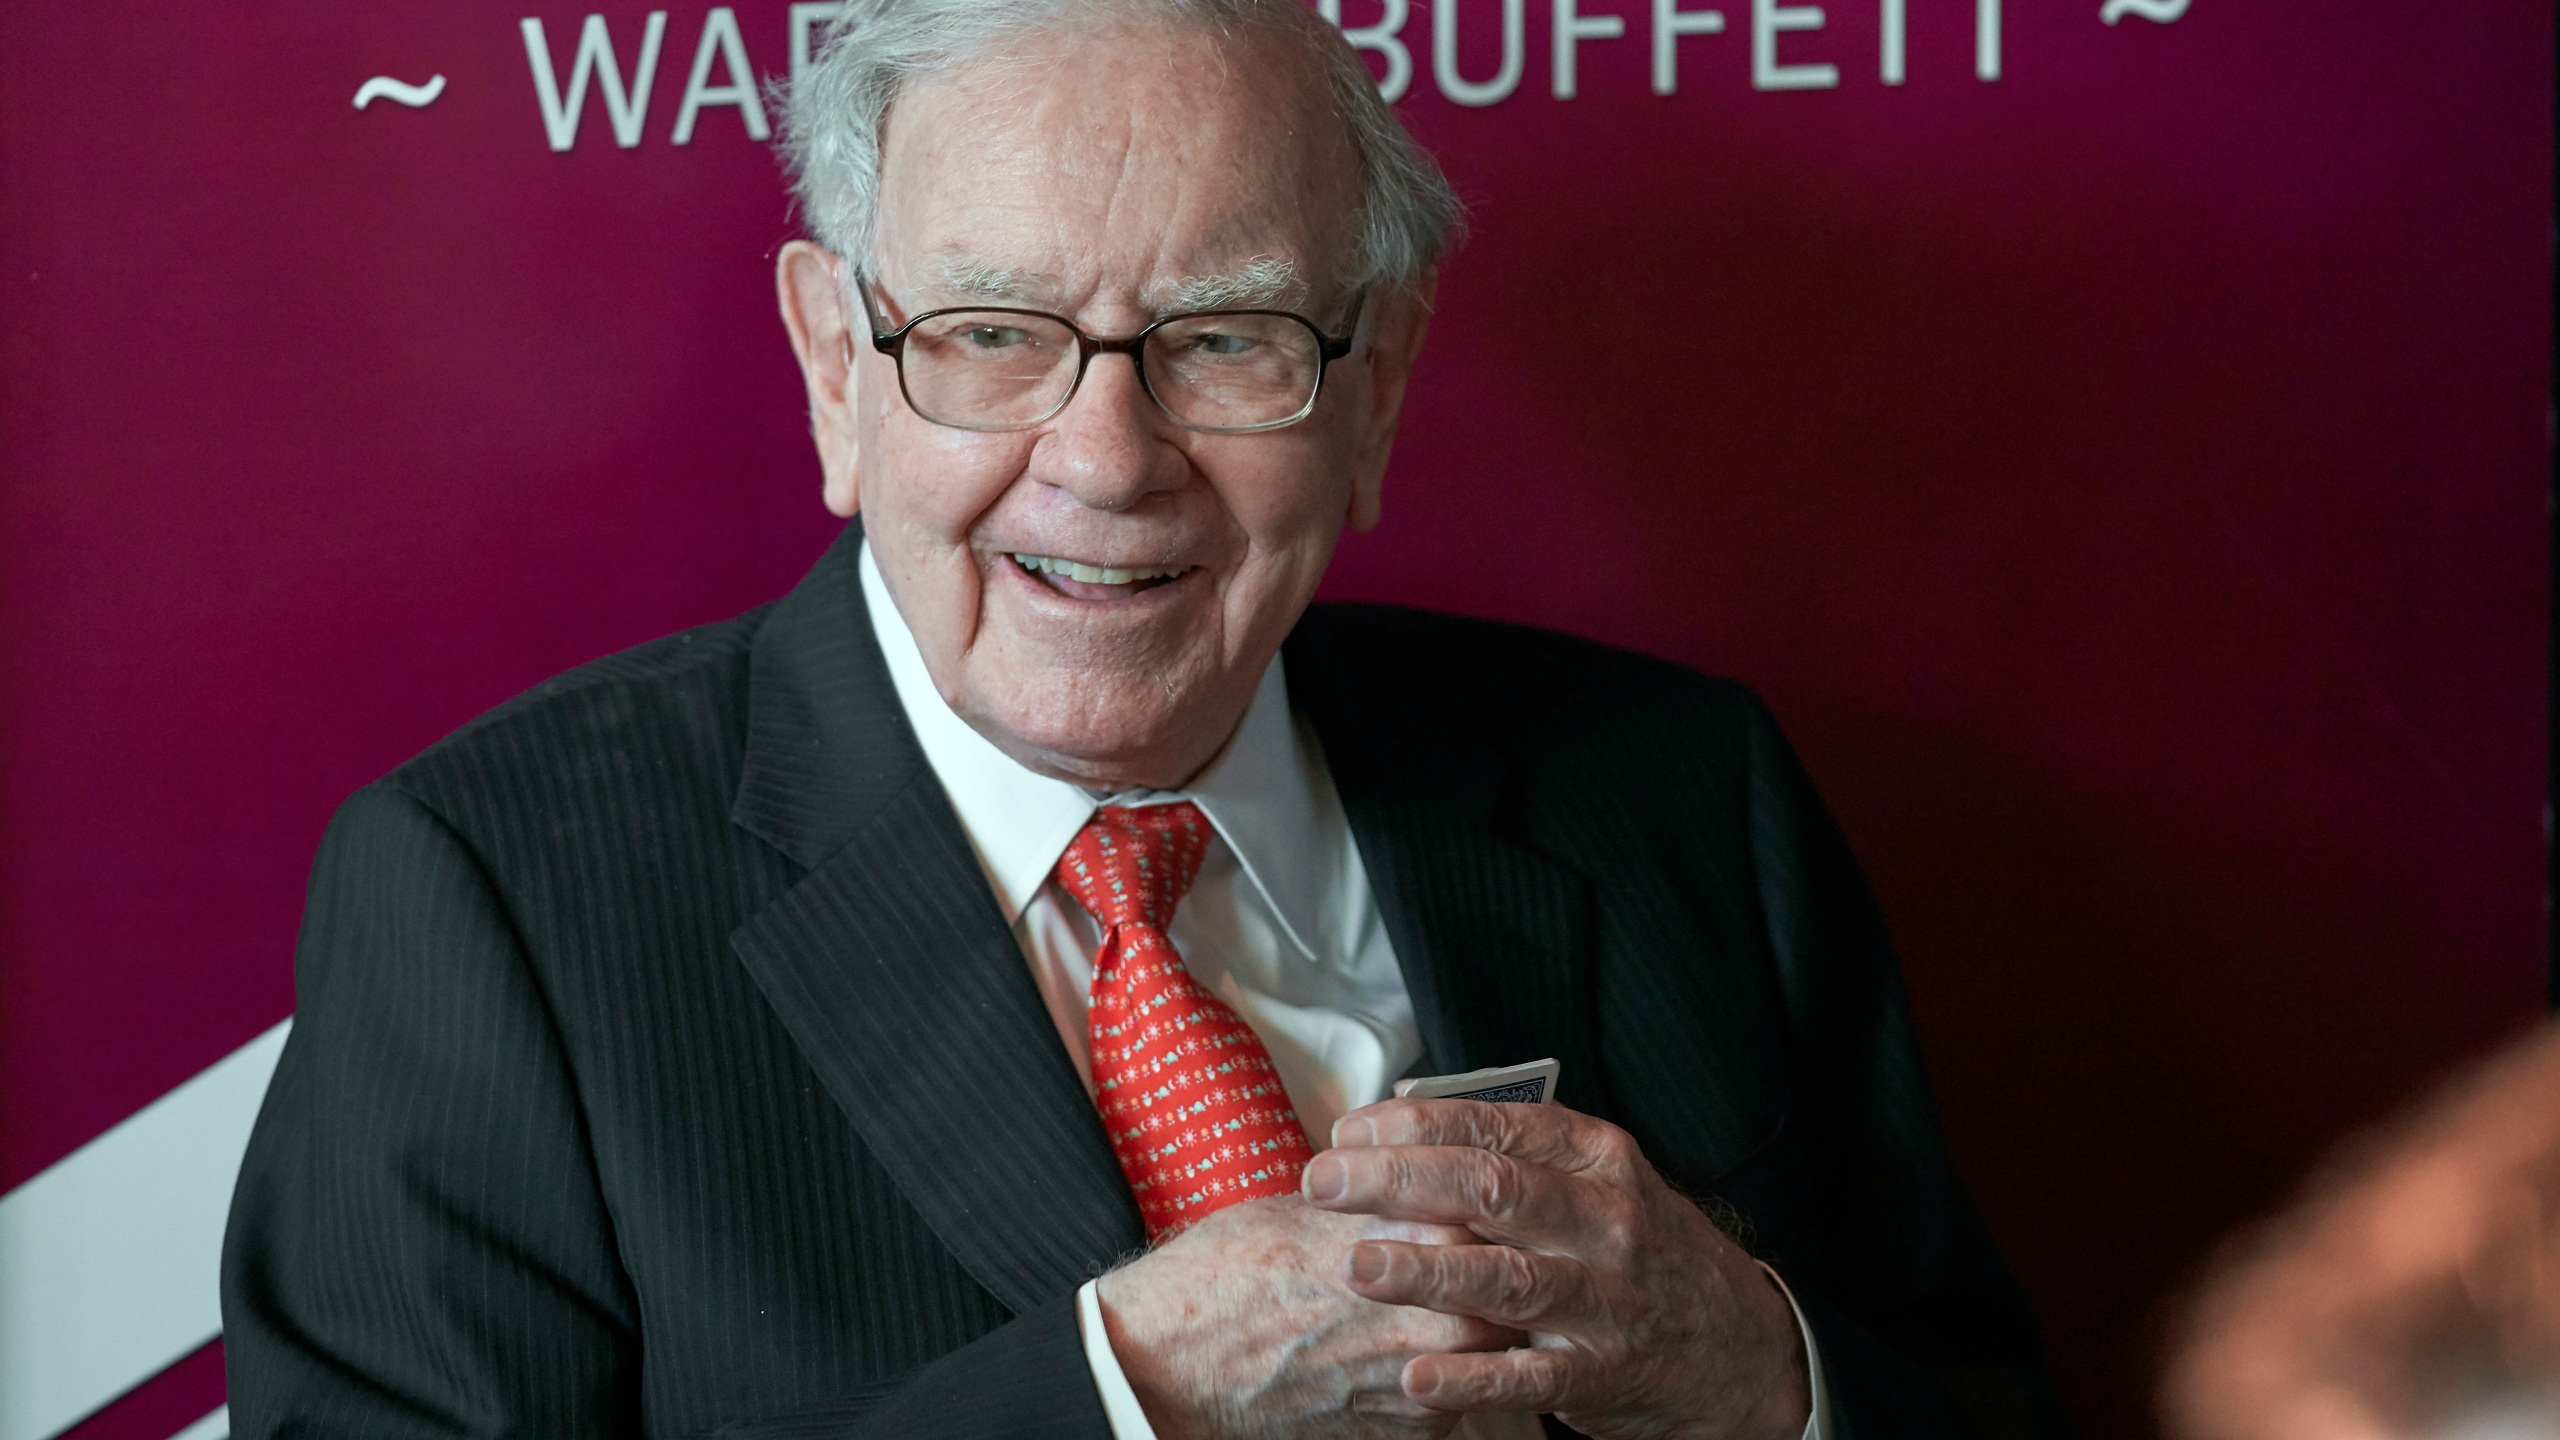 In this May 5, 2019, file photo Warren Buffett, Chairman and CEO of Berkshire Hathaway, smiles as he plays bridge following the annual Berkshire Hathaway shareholders meeting in Omaha, Neb. Buffett will spend Saturday afternoon fielding questions at Berkshire Hathaway's annual meeting, which is being held virtually. (AP Photo/Nati Harnik, File)